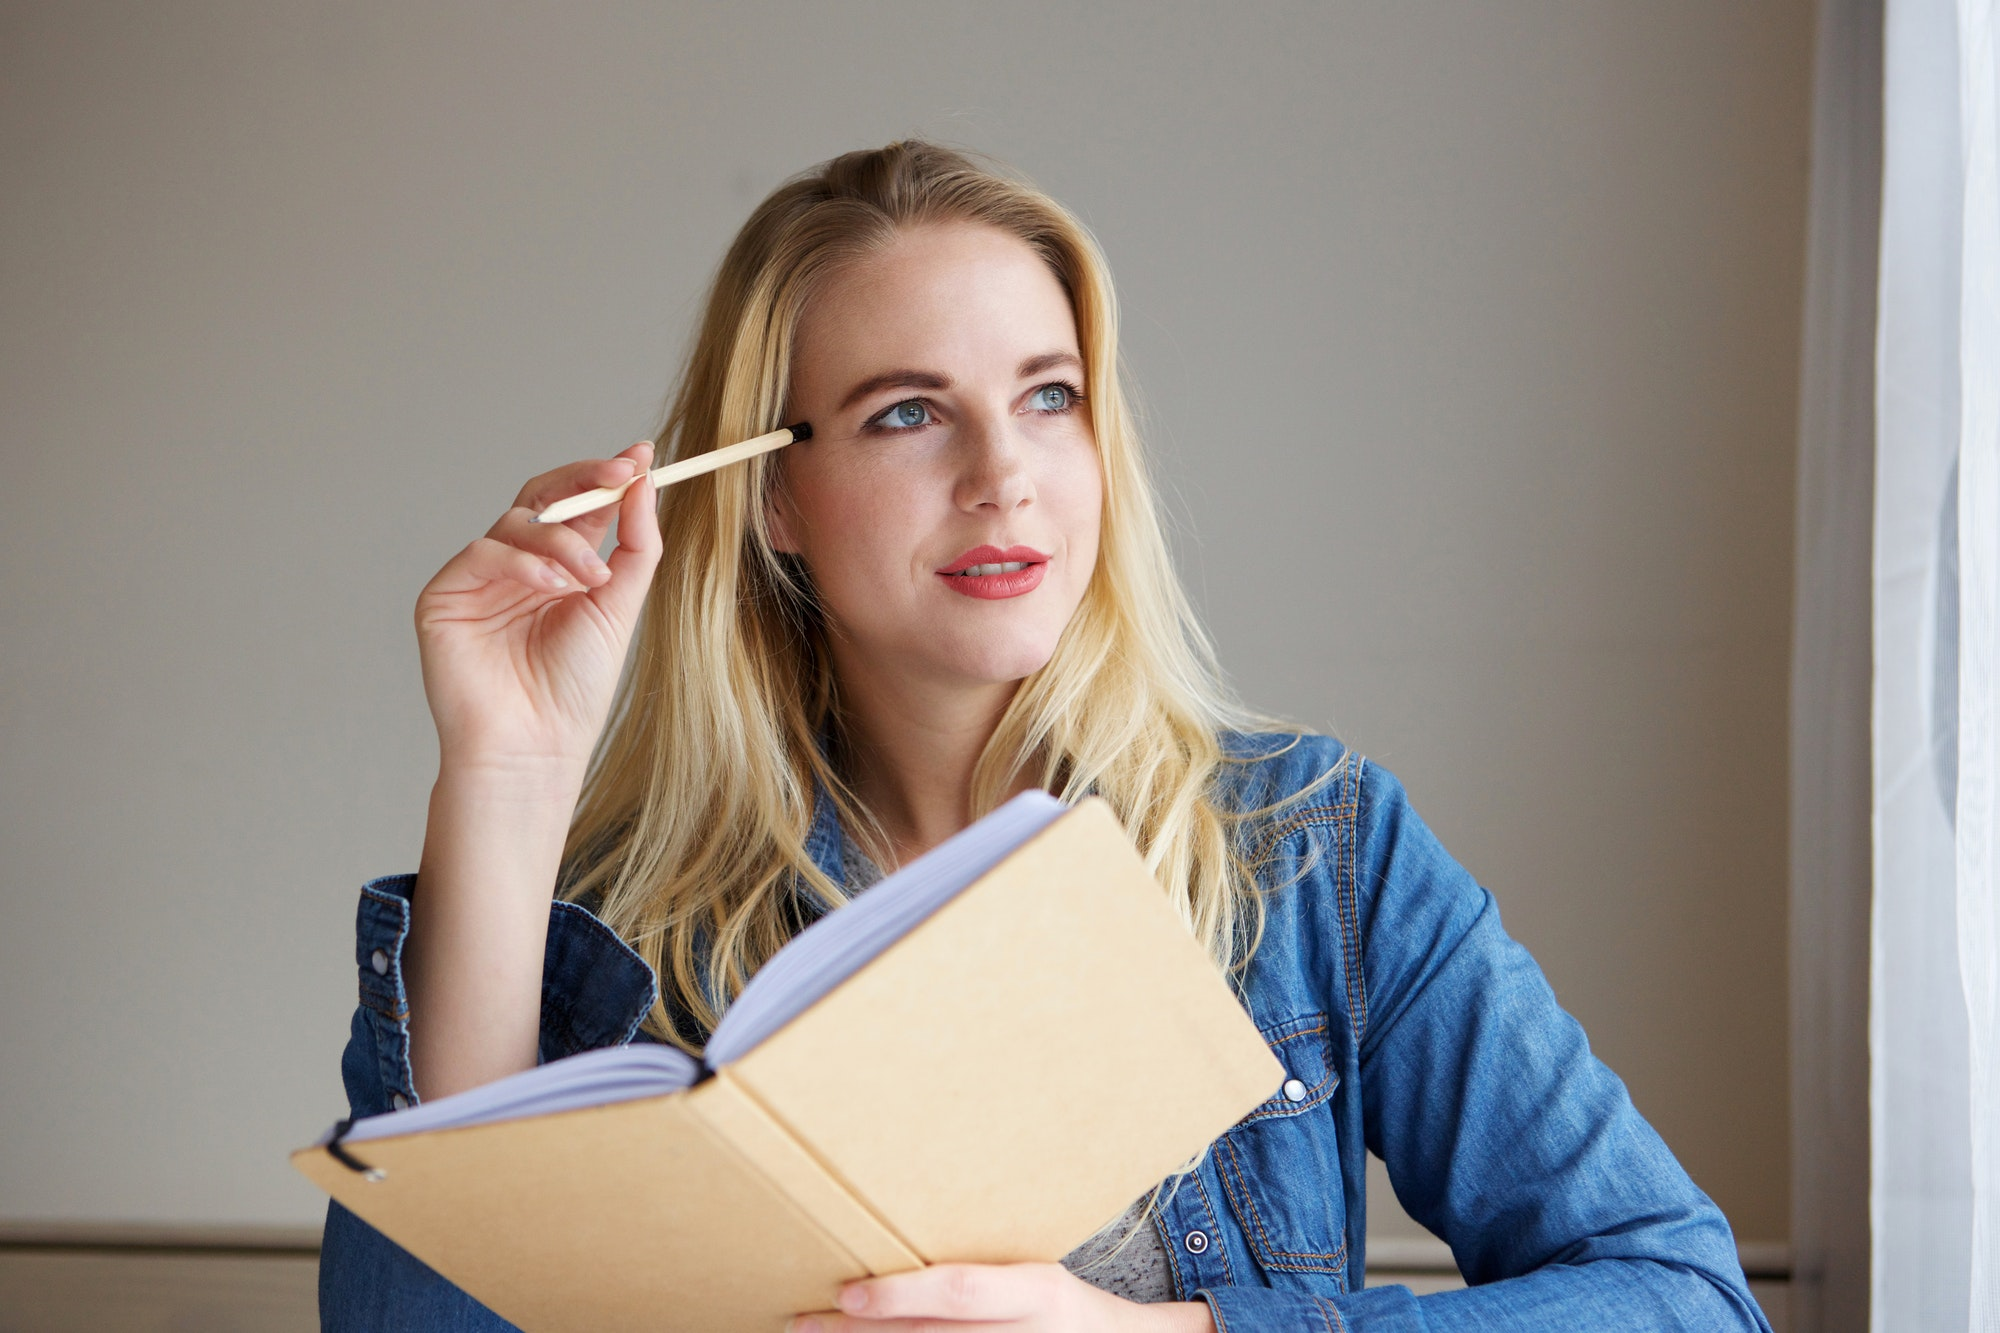 thinking blond woman holding book and pencil and